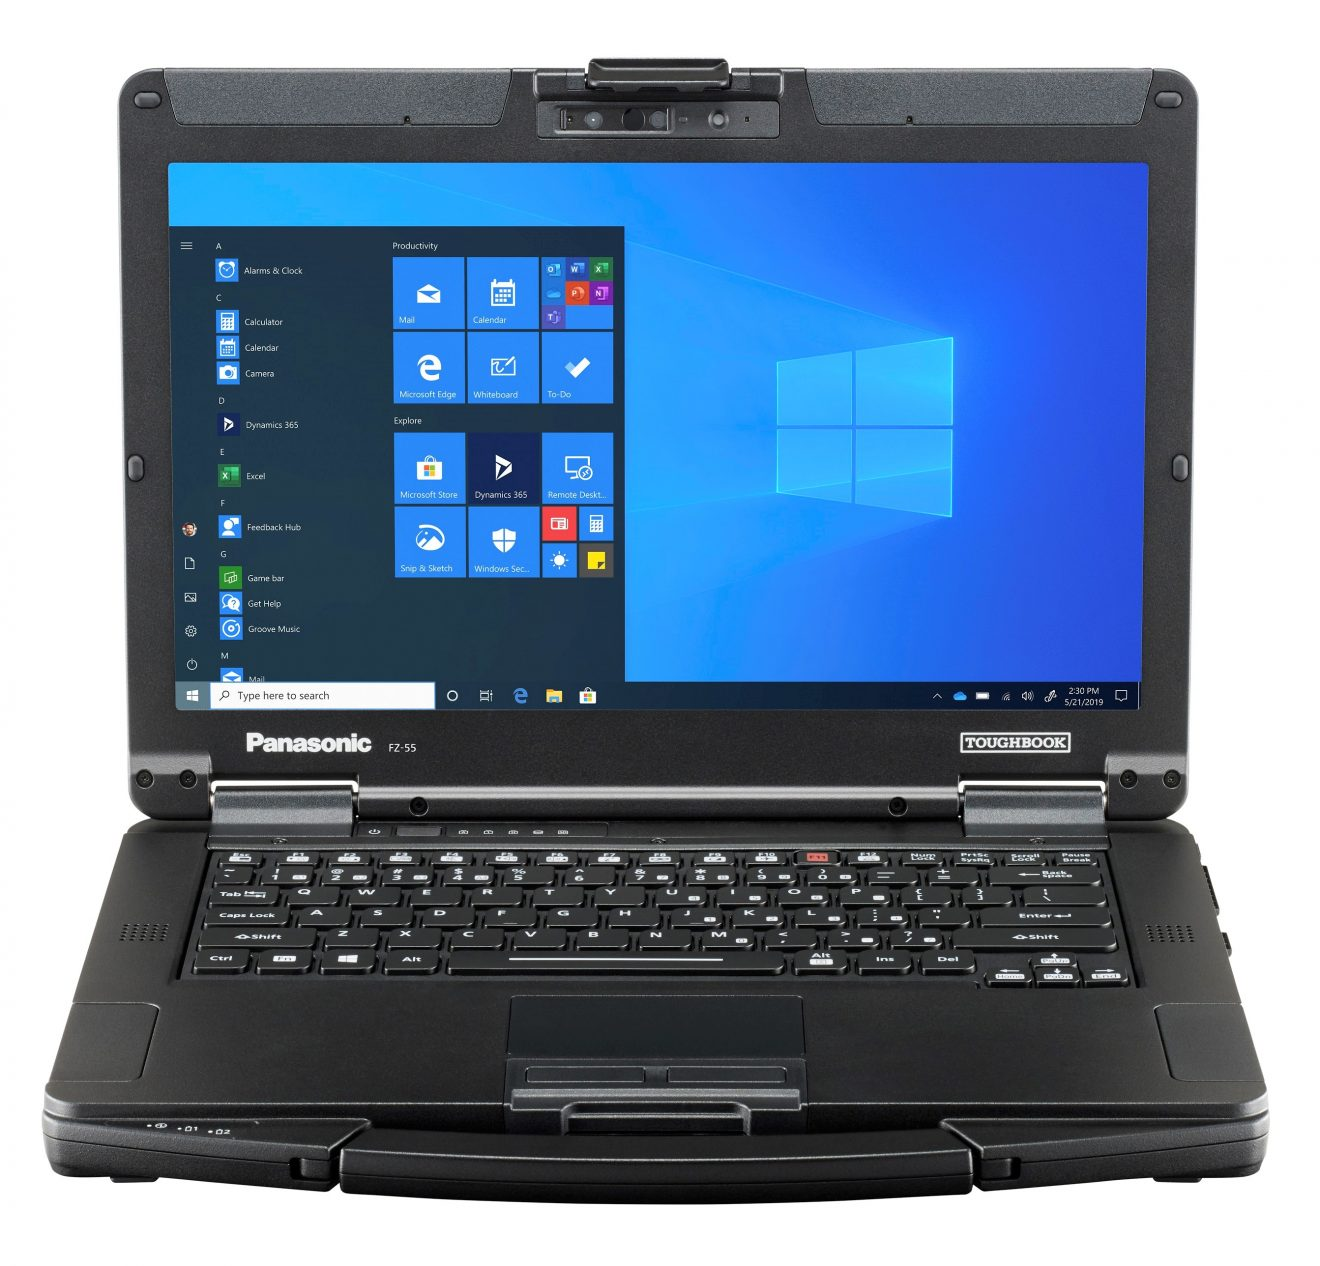 Panasonic launches the most versatile semi-rugged notebook